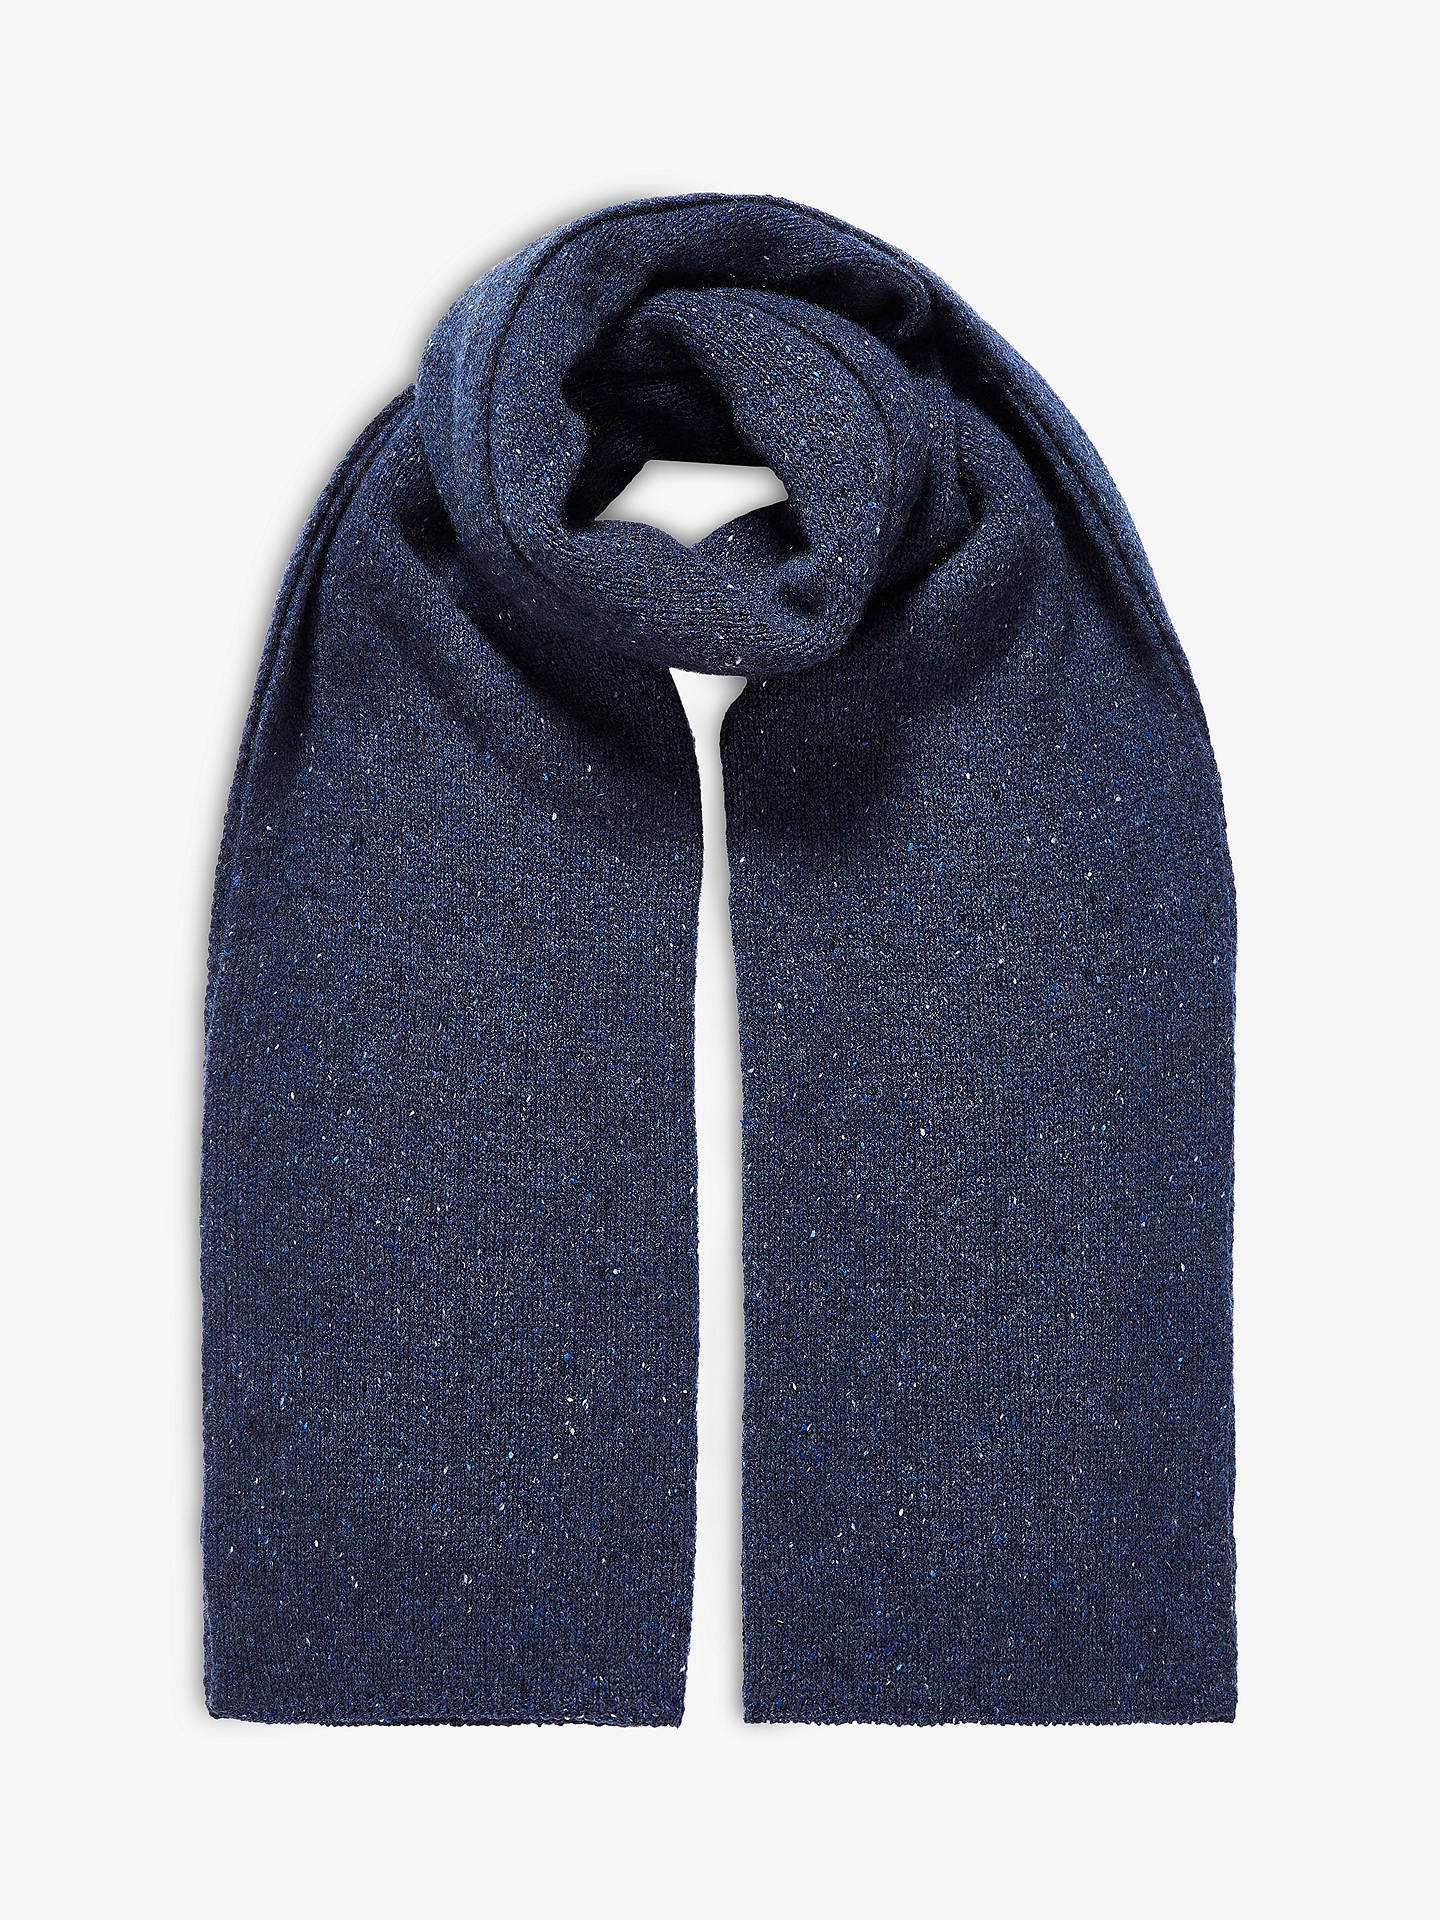 e29e8b38d Buy Brora Cashmere Donegal Knit Scarf, Dusk, One Size Online at  johnlewis.com ...